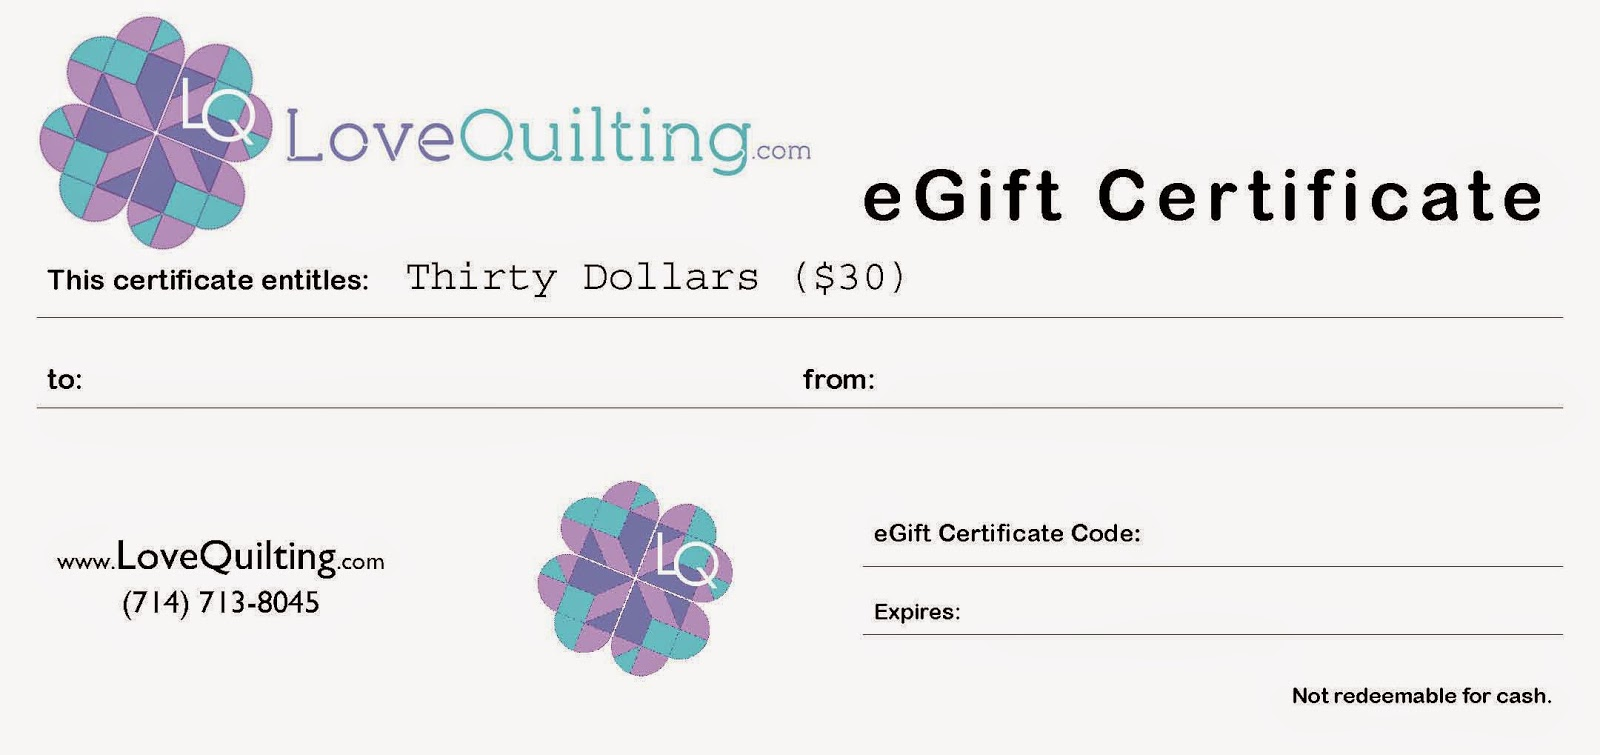 http://www.lovequilting.com/shop/accessories/30-egift-certificate/